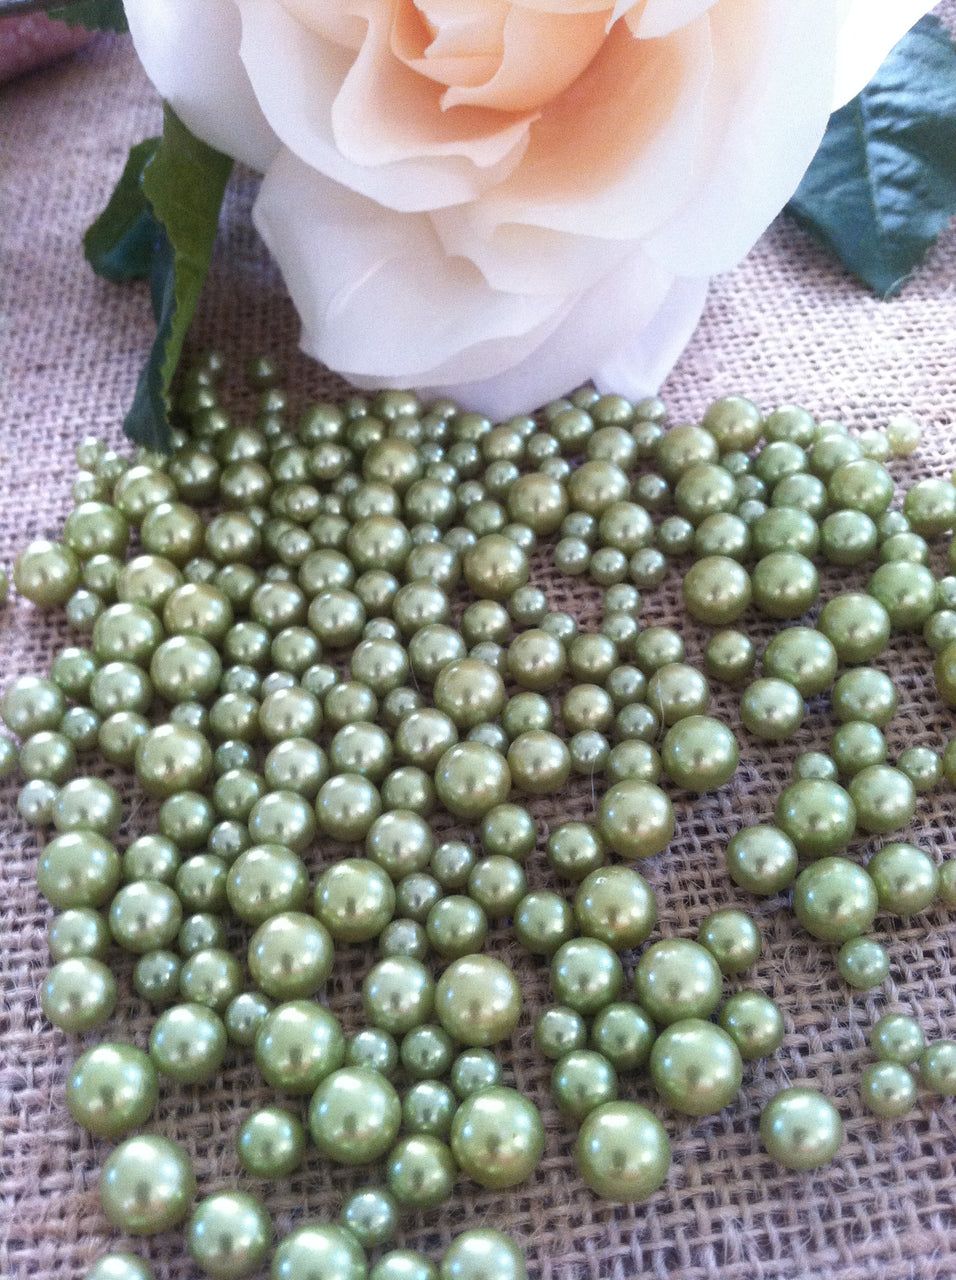 Seafoam Green Pearls Candle Votive Fillers (400pcs) No Hole Pearls Mix Size, Table Scatters